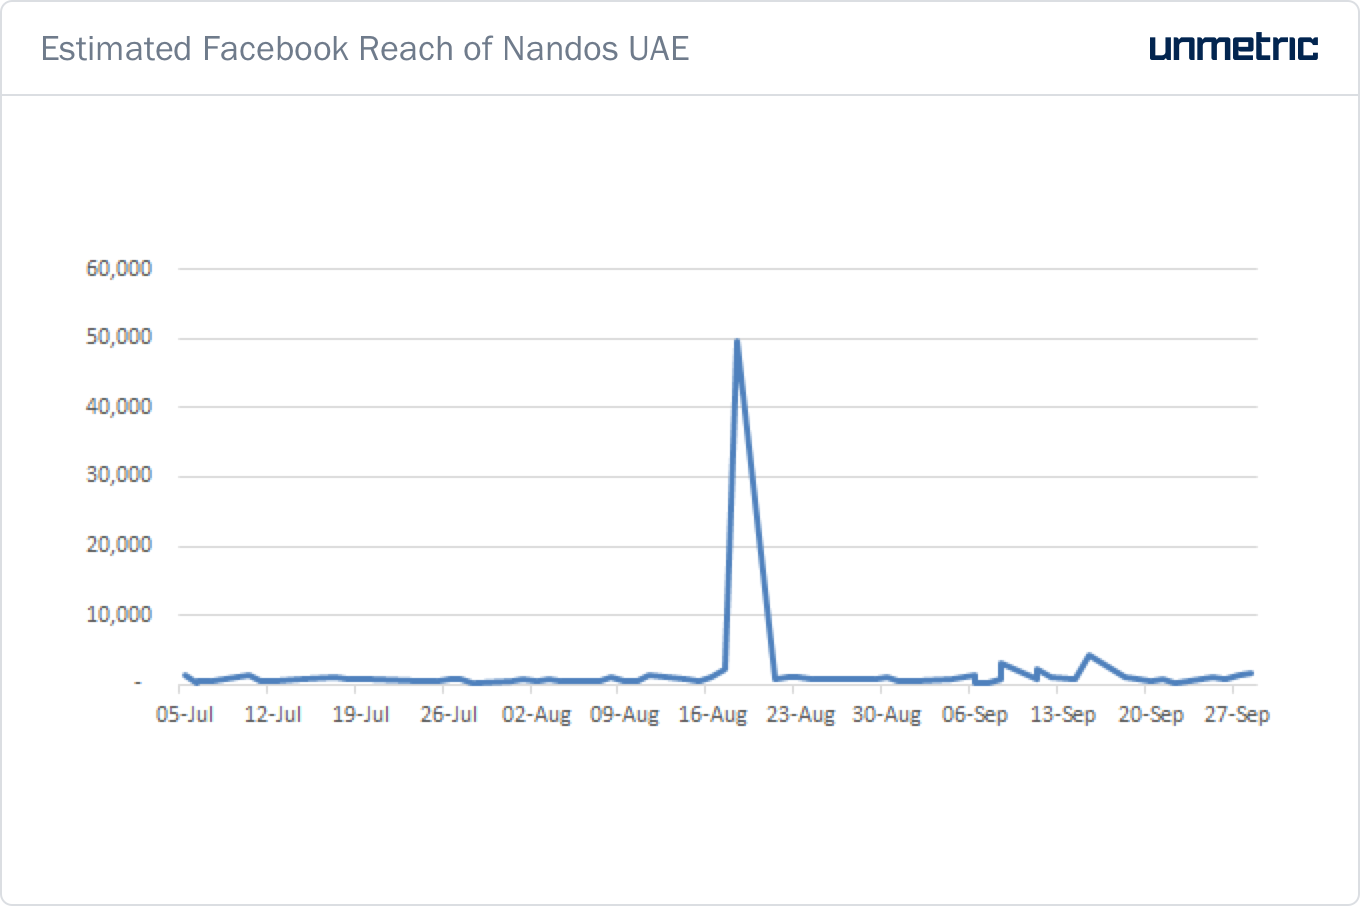 Estimated_Facebook_Reach_of_Nandos_UAE.png